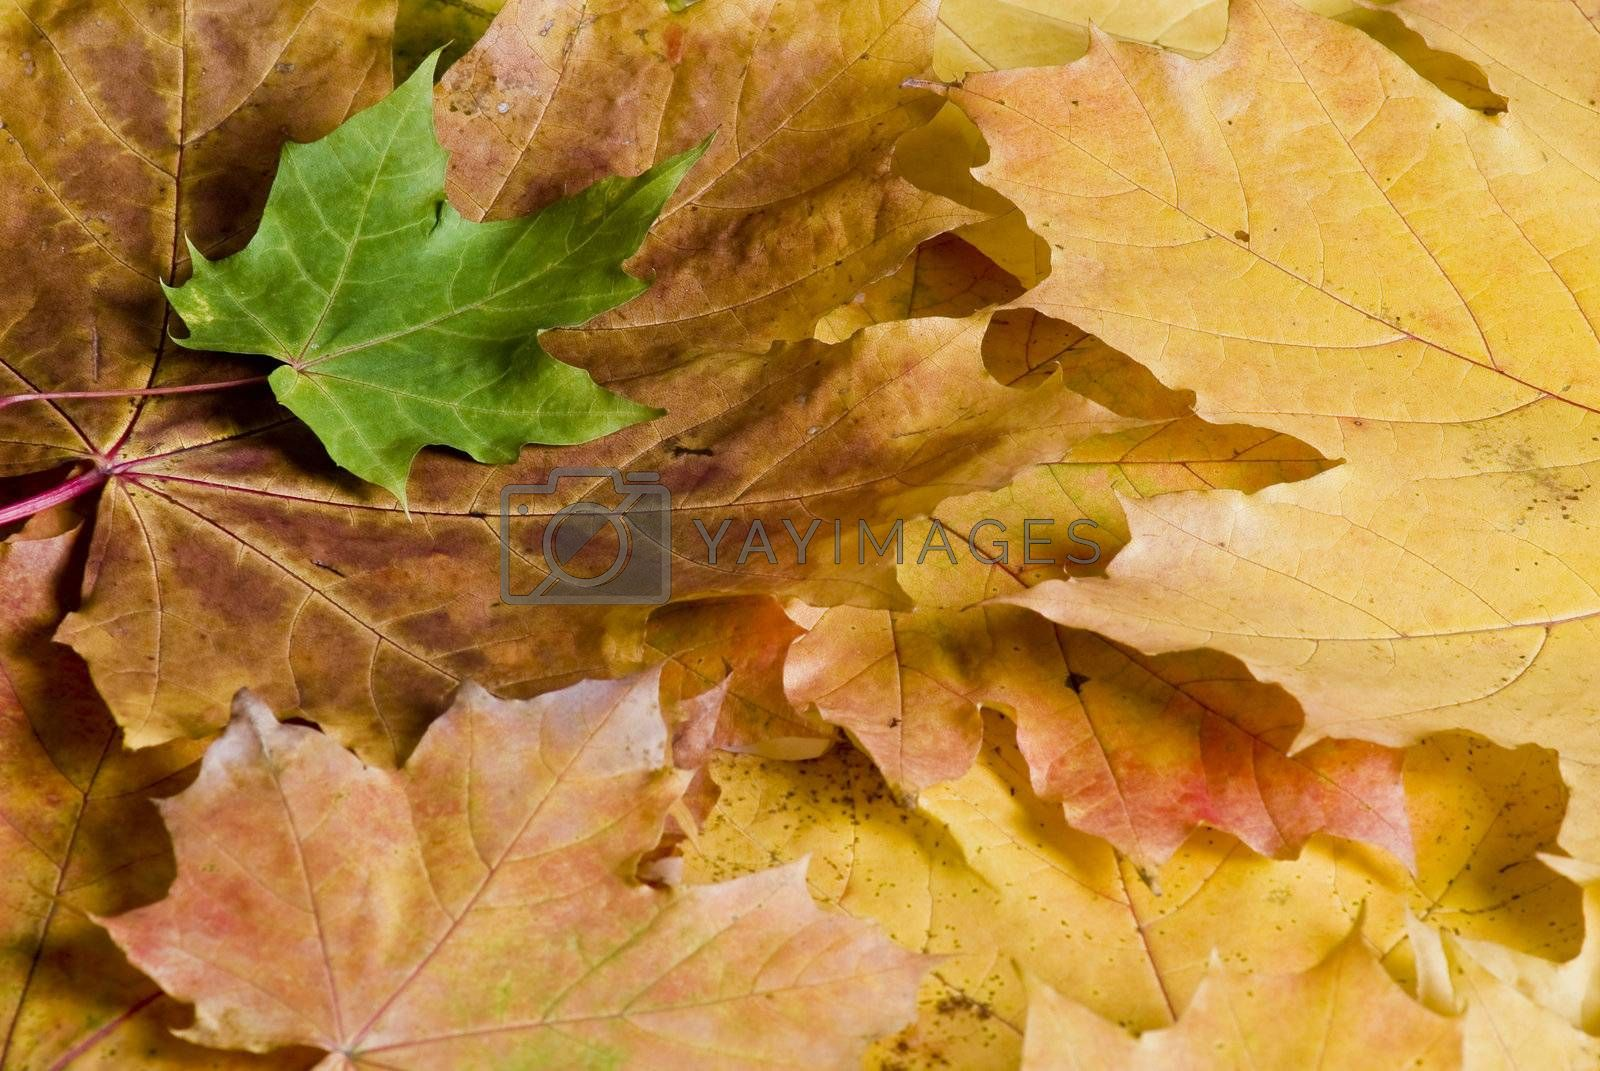 Autumn leaves by caldix